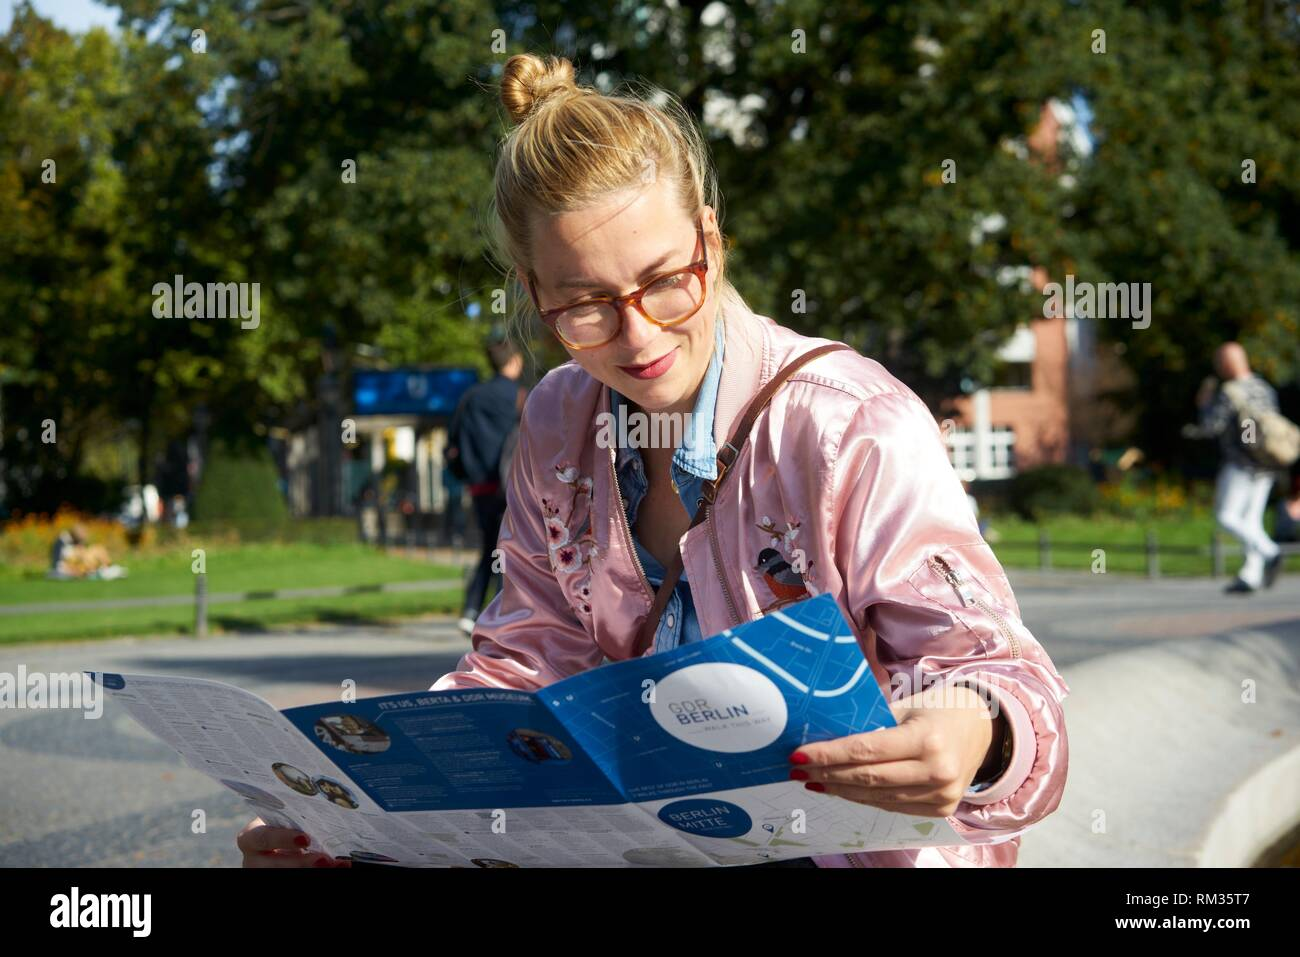 Woman reading city guide map, in berlin, germany stock photo.